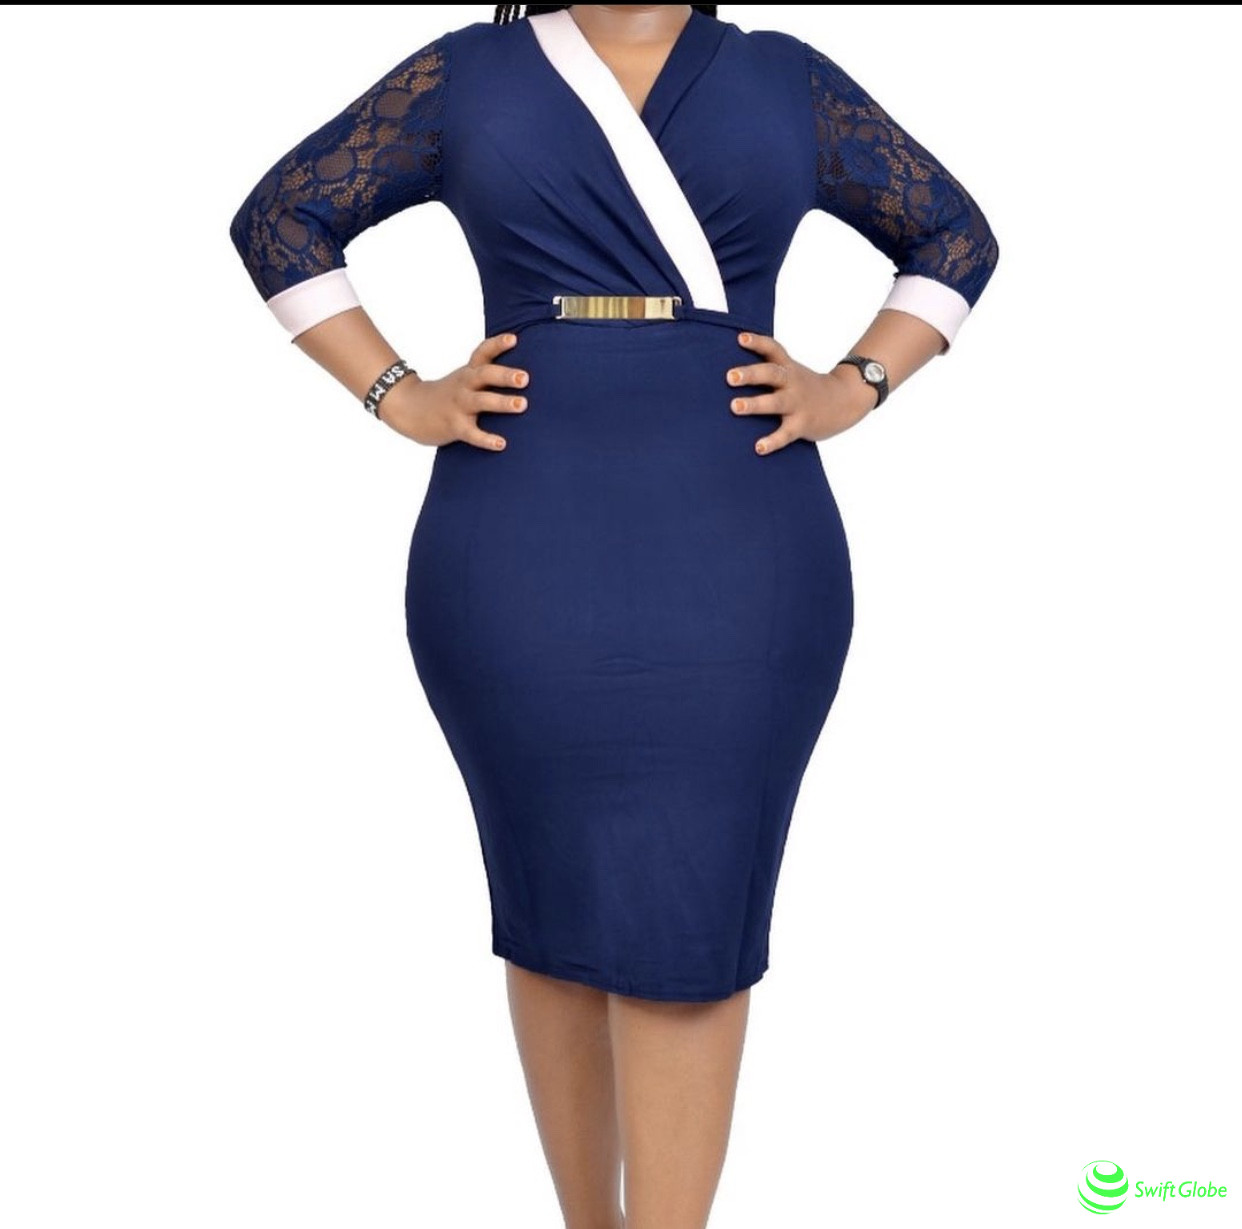 Long sleeve stretcher dress with lace